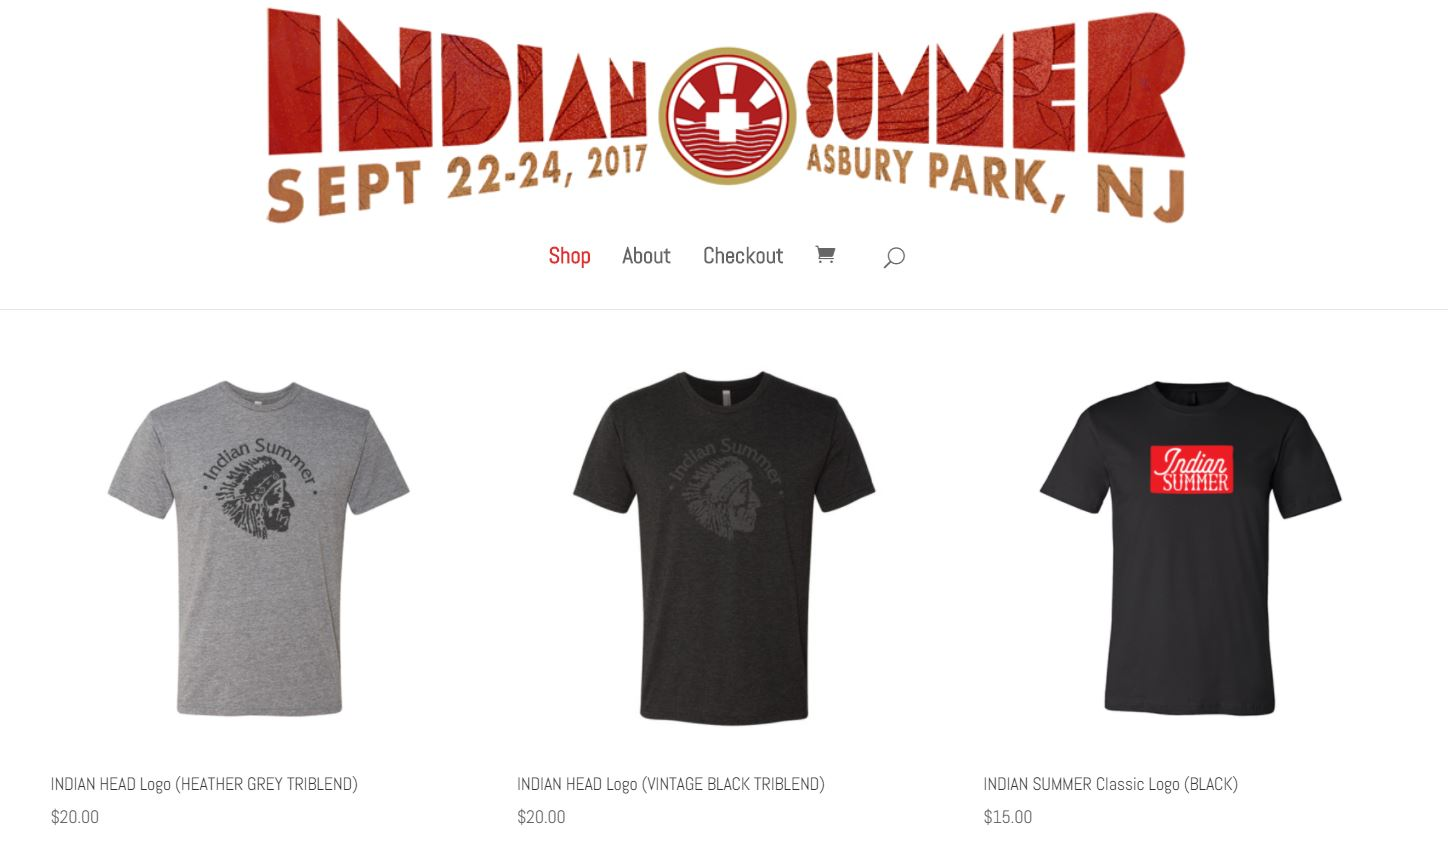 Indian Summer Store - Why wait until Indian Summer to pick up your new favorite T-Shirt? You can now purchase these high quality, locally printed shirts at In the Clouds.